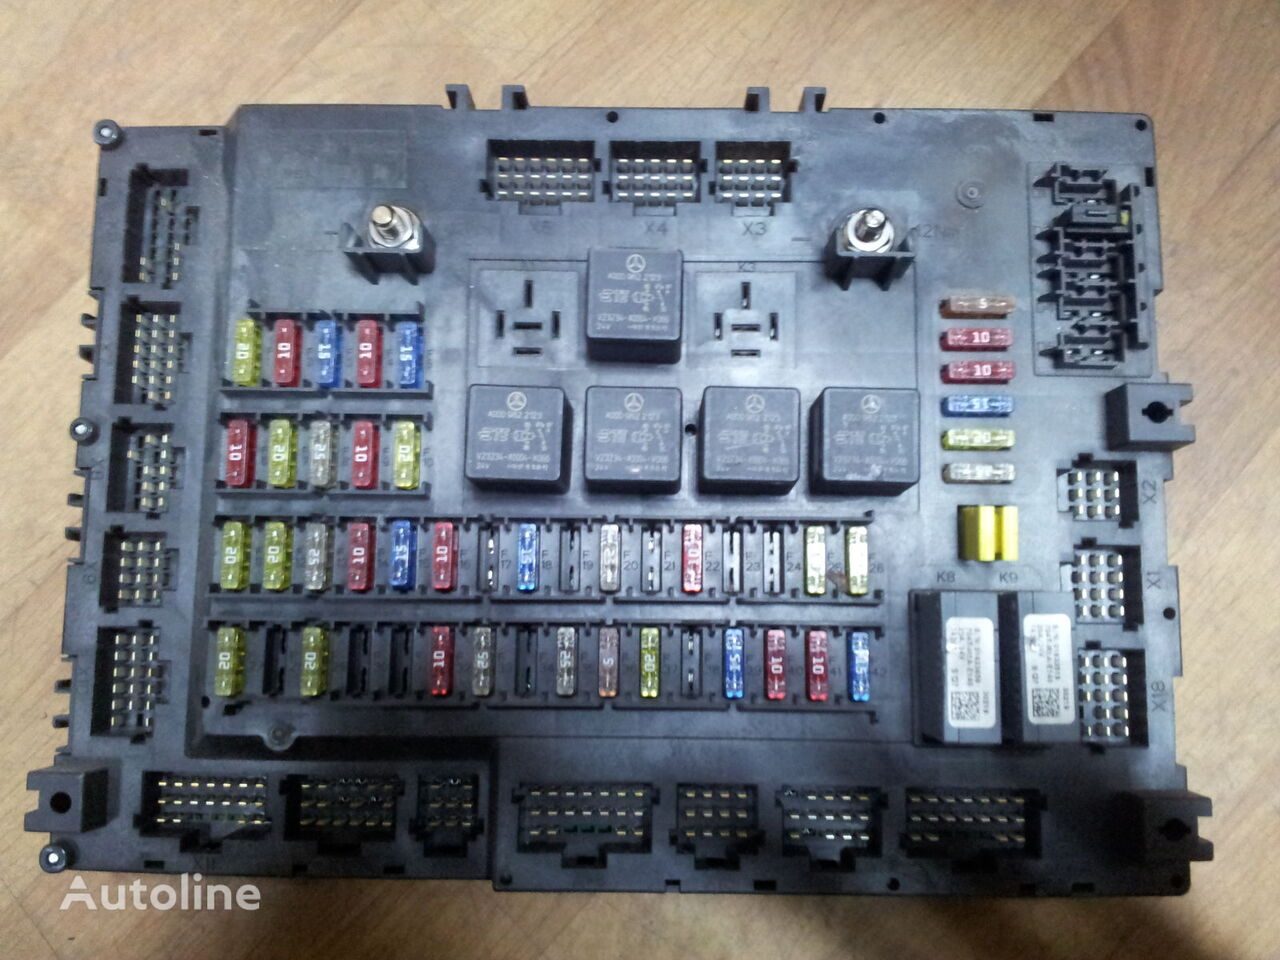 3BC3 Mercedes Fuse Box | Wiring Resources on audi wiring-diagram, 1966 mercedes 230s wiring-diagram, 3.0 mercruiser wiring-diagram, 1999 mercedes e320 wiring-diagram, lutron dimmer wiring-diagram, mercedes 300d wiring-diagram, 1981 300d wiring-diagram, zongshen wiring-diagram, farmall cub wiring-diagram, willys wiring-diagram, sears craftsman wiring-diagram, 1968 mercedes diesel wiring-diagram, cummins wiring-diagram, range rover wiring-diagram, mercedes w124 wiring-diagram, 1990 mercedes 300e wiring-diagram, mb c300 wiring-diagram, massey ferguson wiring-diagram, peterbilt 387 wiring-diagram, ski-doo wiring-diagram,